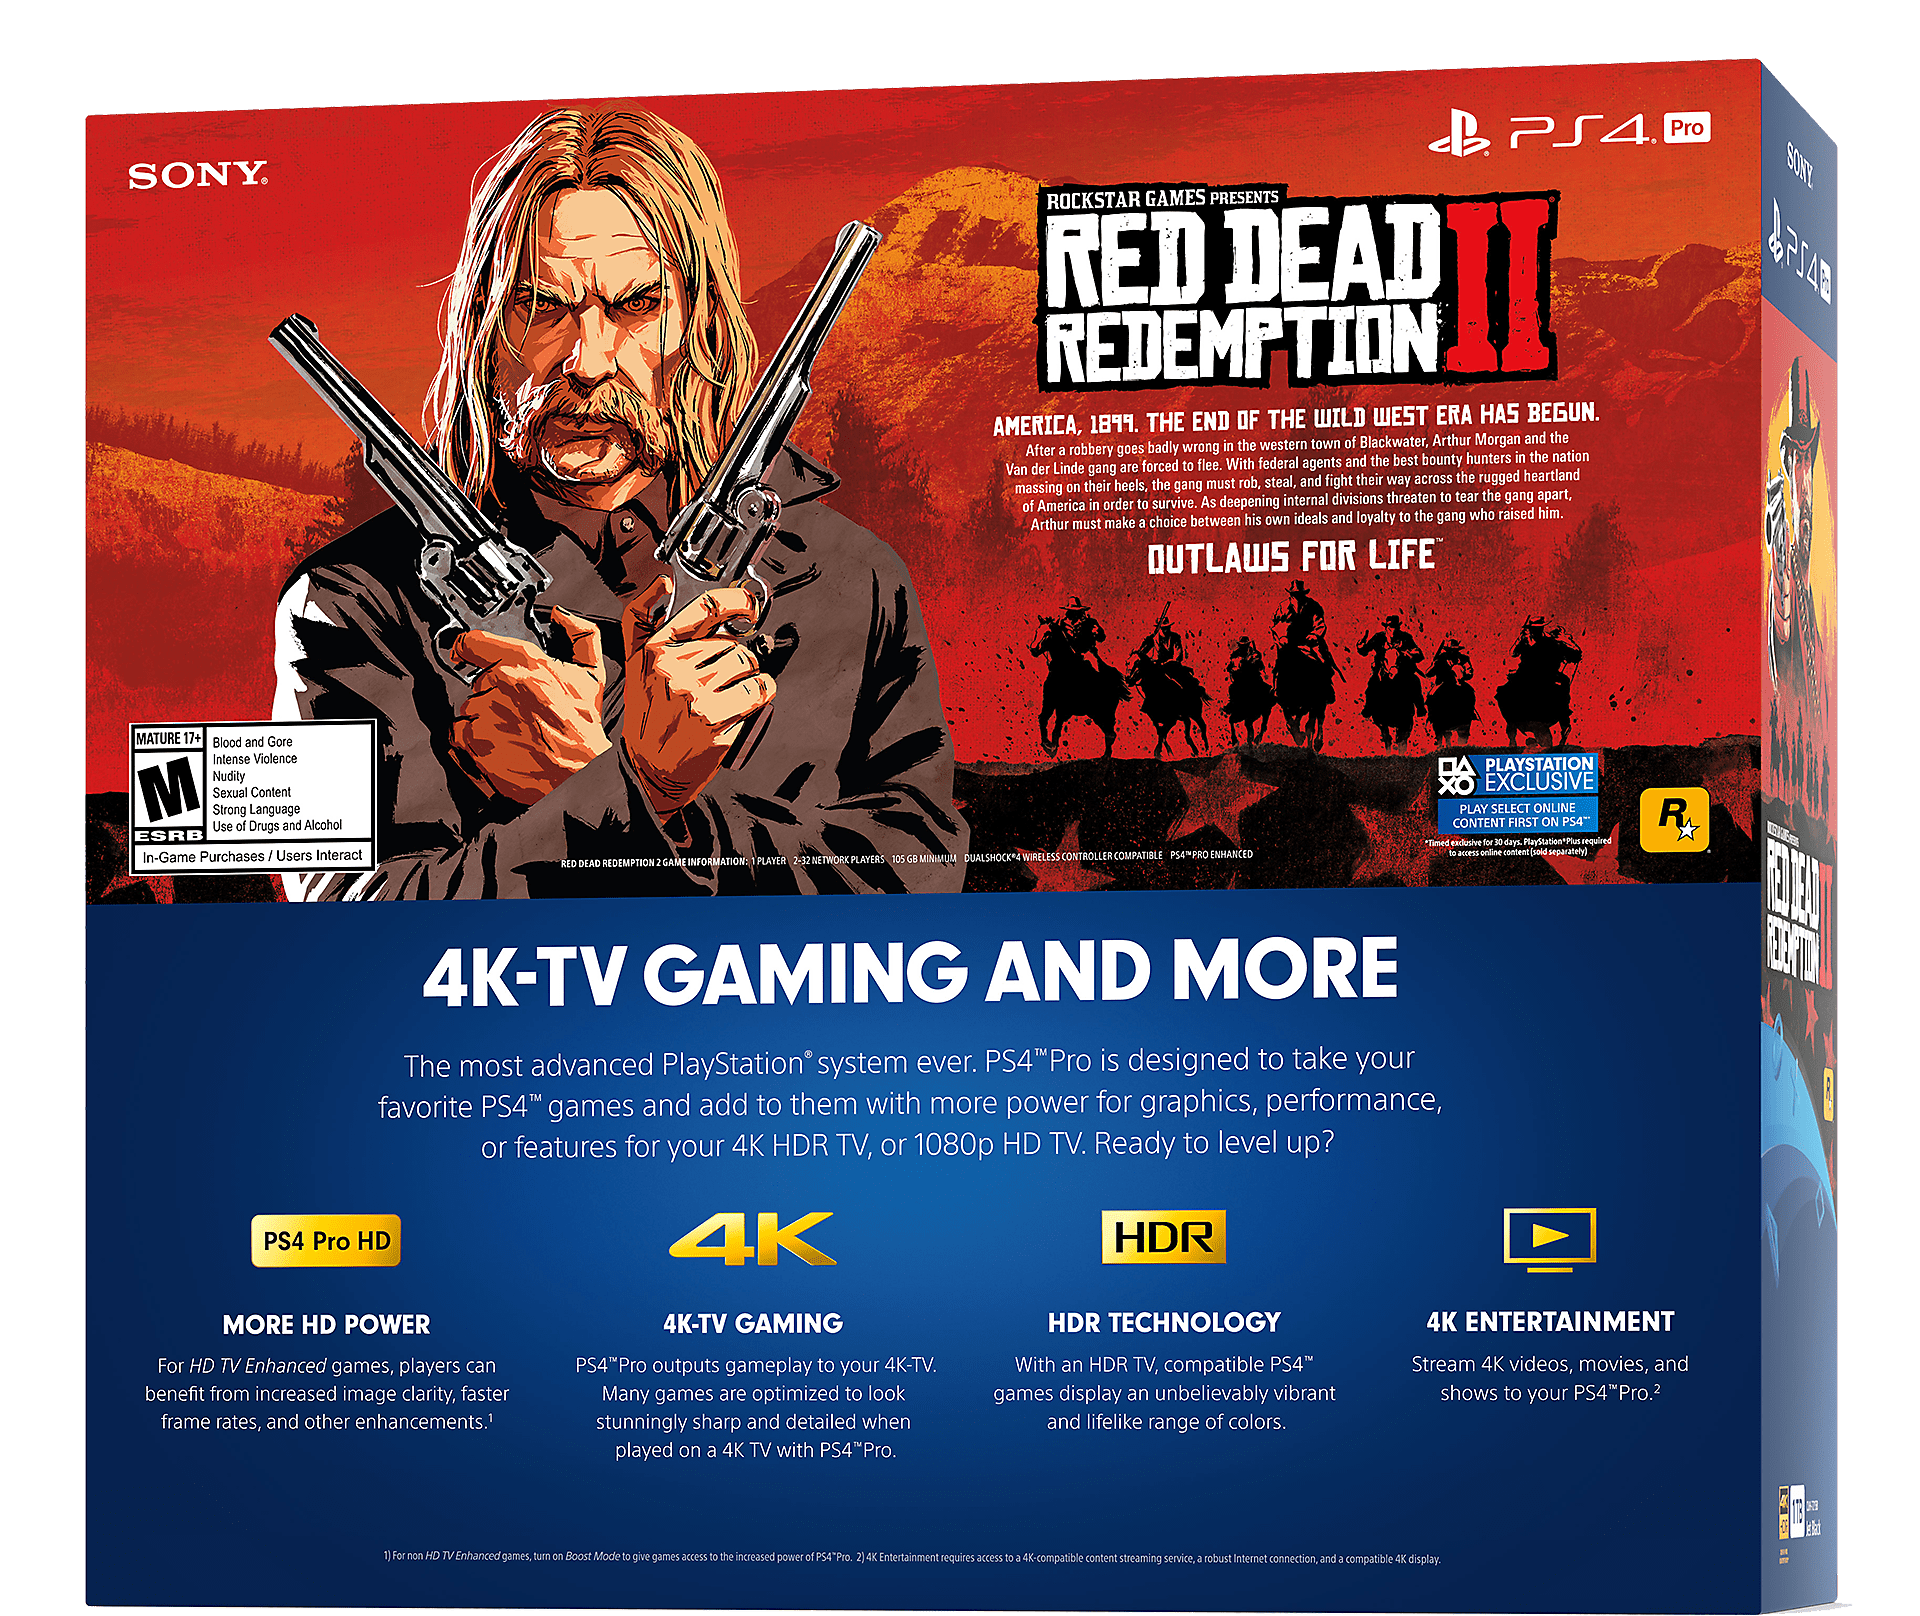 red dead redemption 2 ps4 pro bundle box front